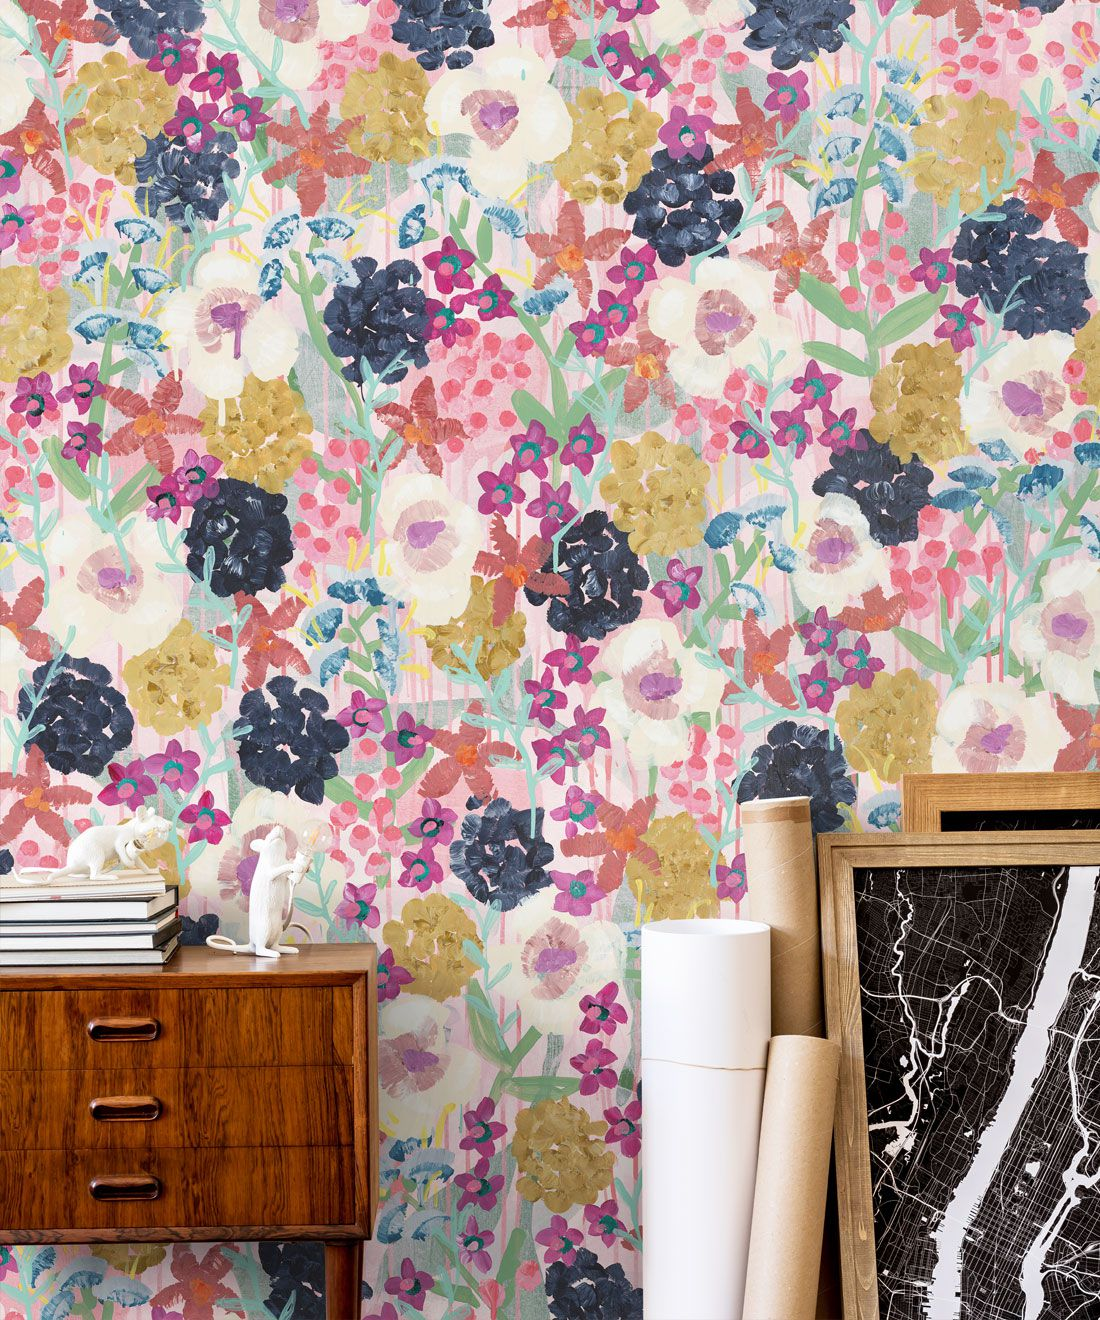 Garden State Wallpaper •Colorful Floral Wallpaper • Tiff Manuell • Abstract Expressionist Wallpaper • Close Up Insitu